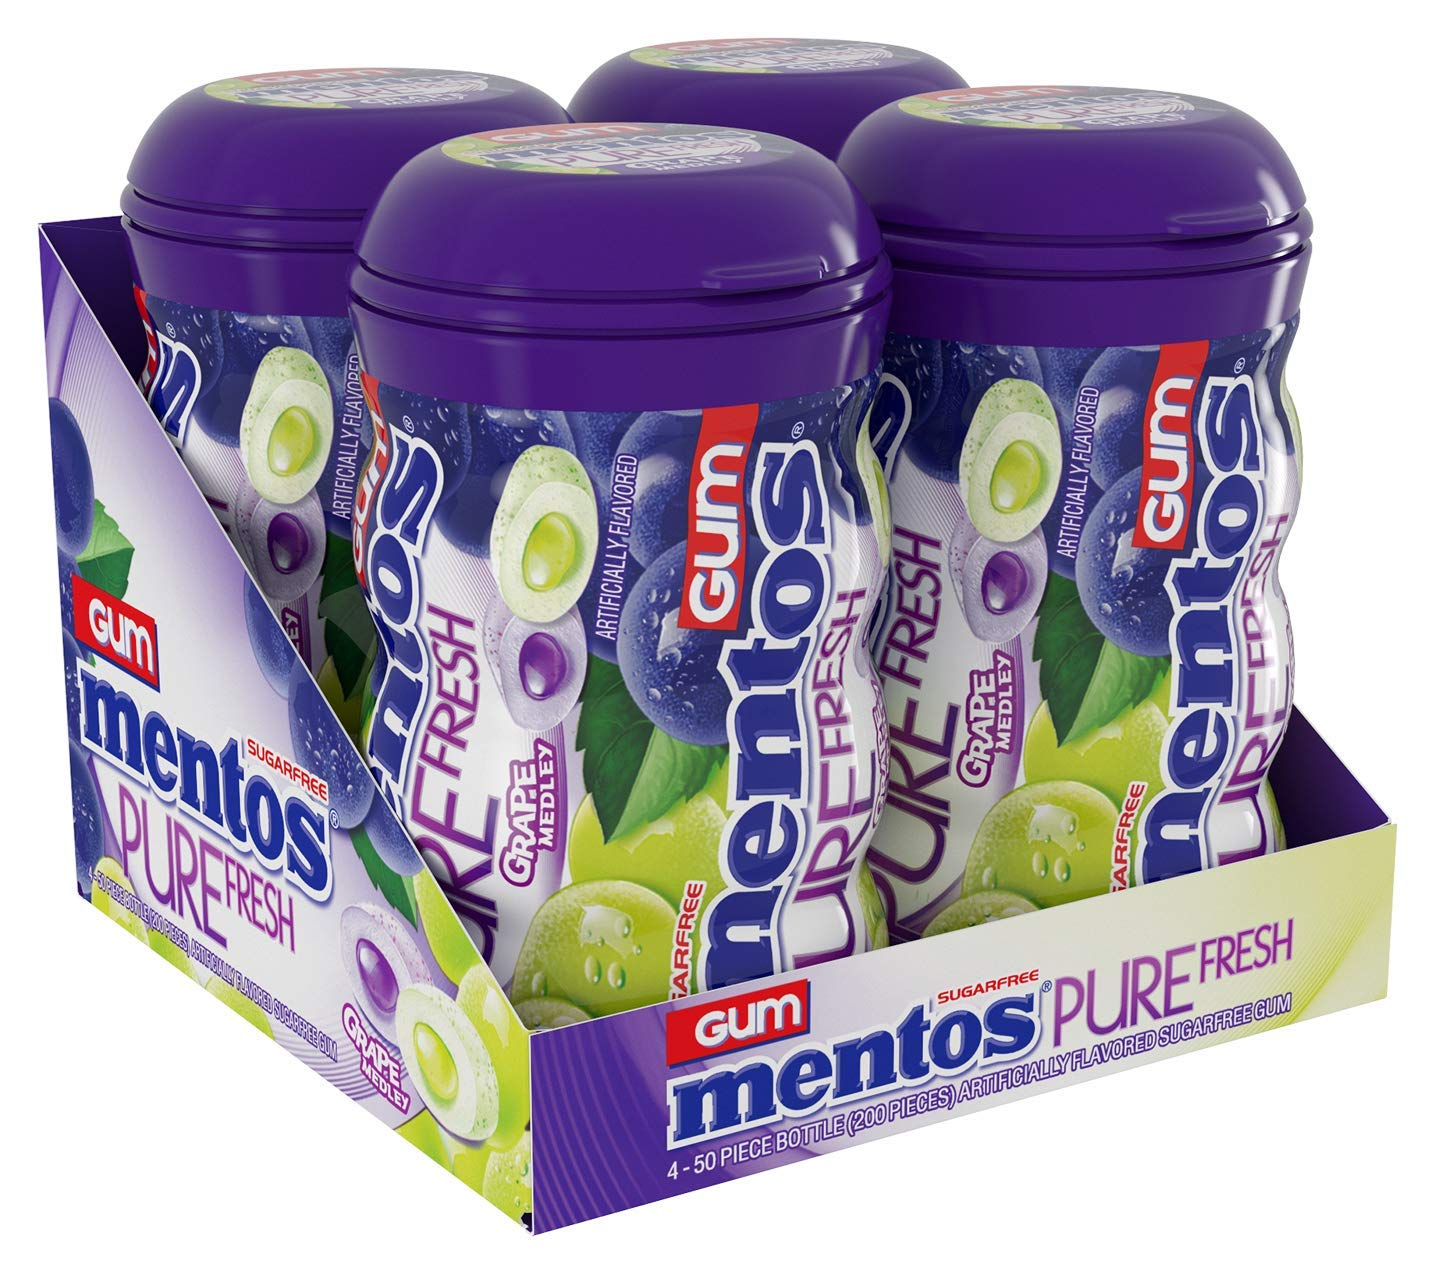 Mentos Pure Fresh Sugar-Free Chewing Gum With Xylitol, Grape Medley, 50 Piece Bottle (Bulk Pack of 4)